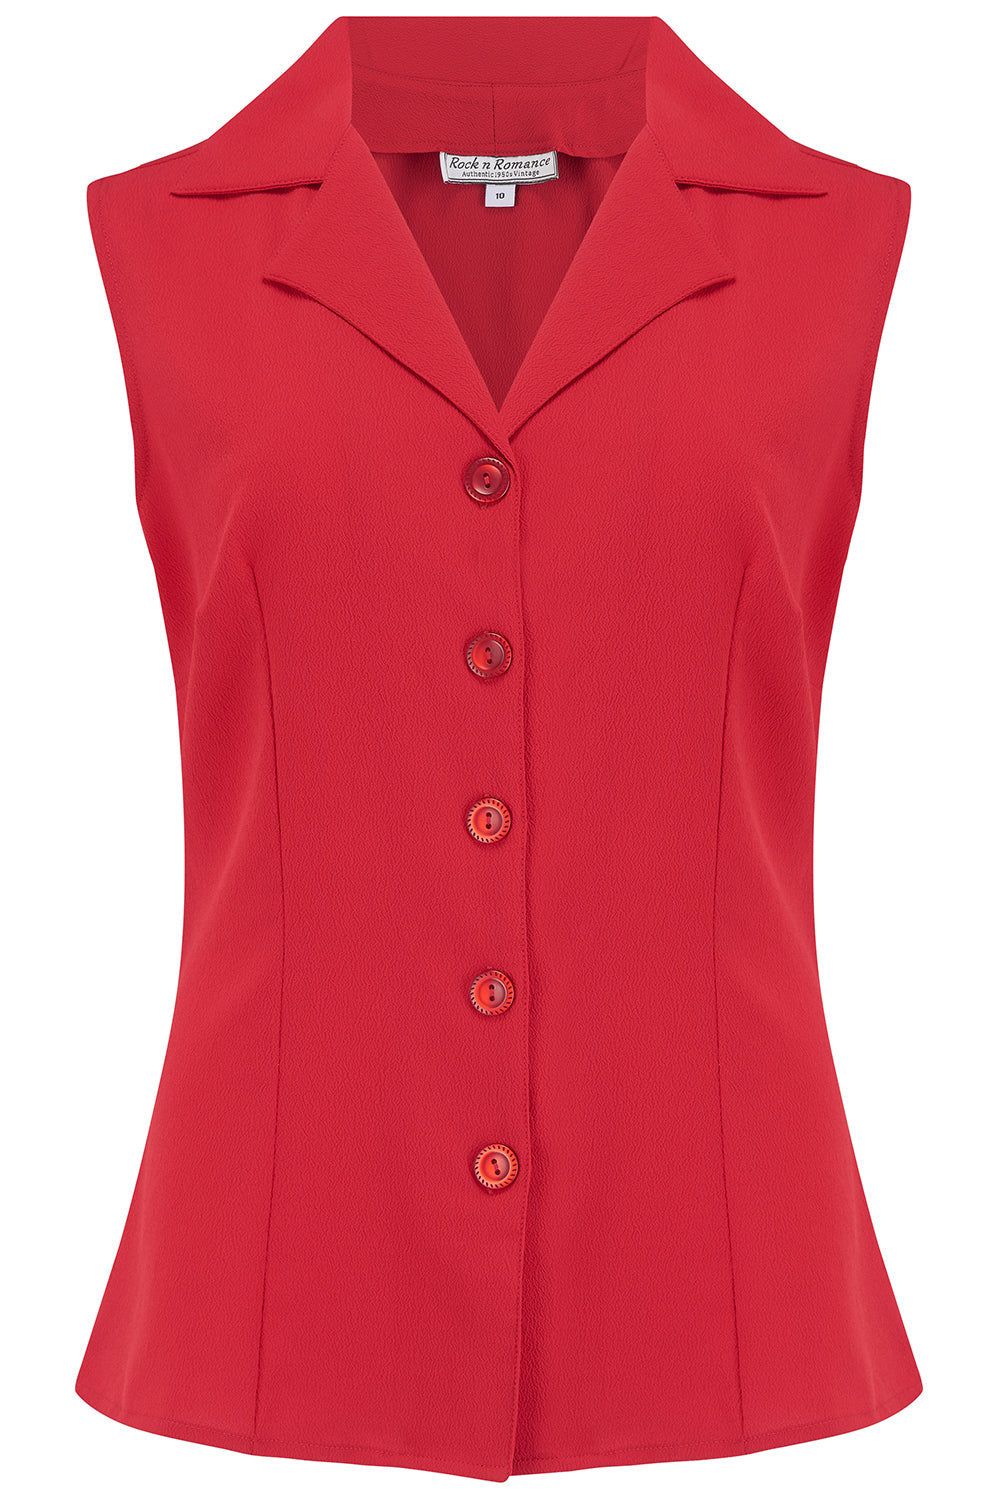 50s Shirts & Tops Sample Sale The Gladys Sleeveless Summer Blouse in Solid Red Classic Vintage 1950s Inspired Style £12.00 AT vintagedancer.com